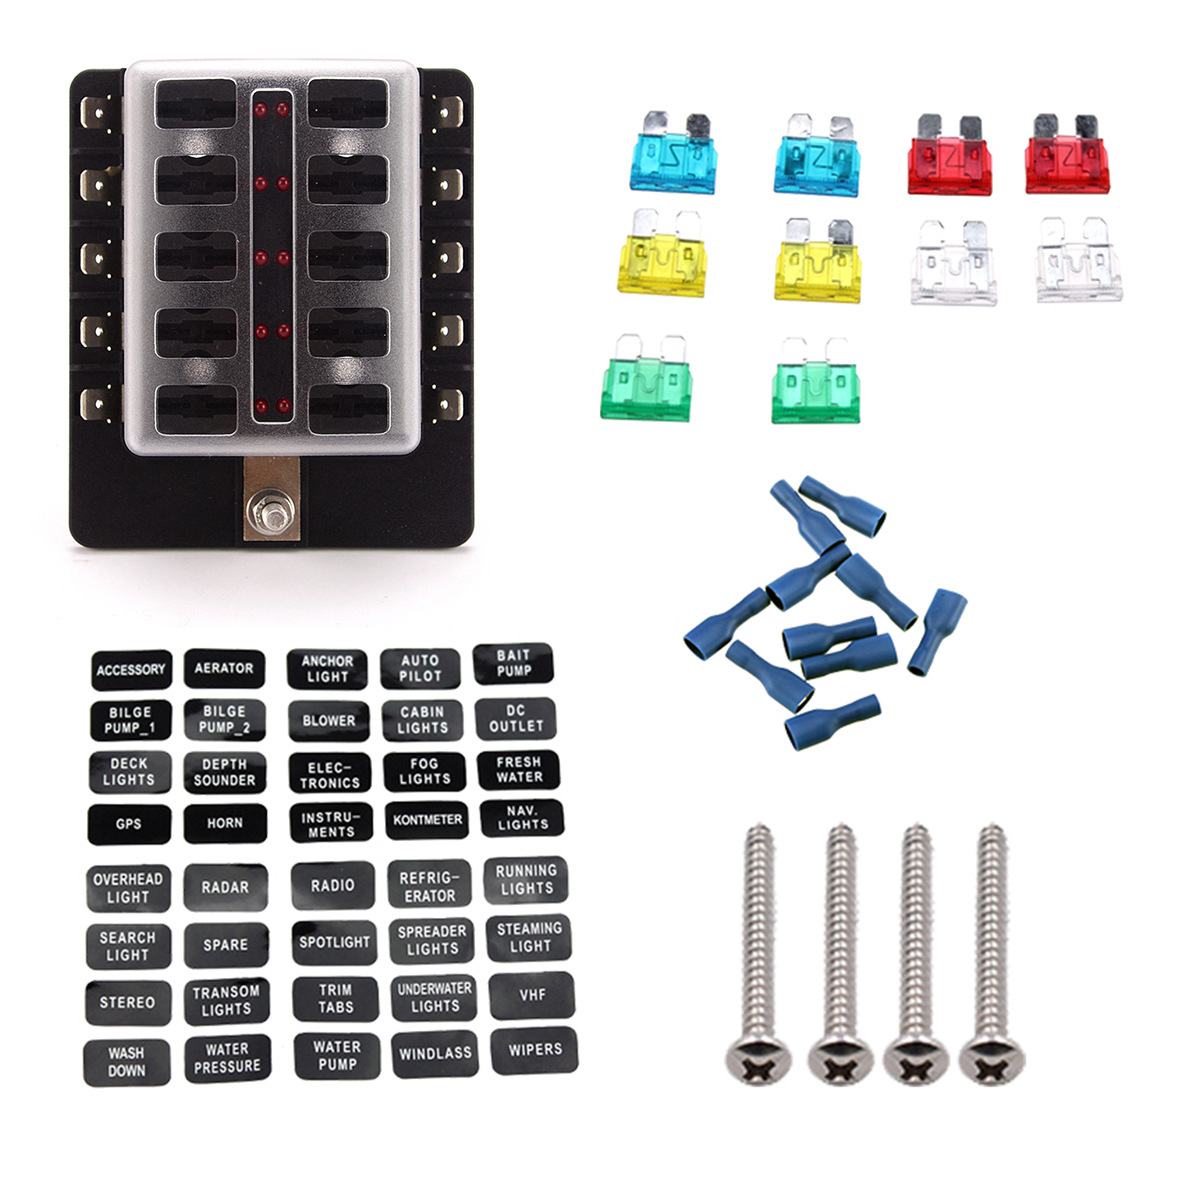 High Precision Melting Point Car Fuse Box Fusibles Auto Block Melted 10 Way Light And Pc Terminal Medium 10a 15a 20a